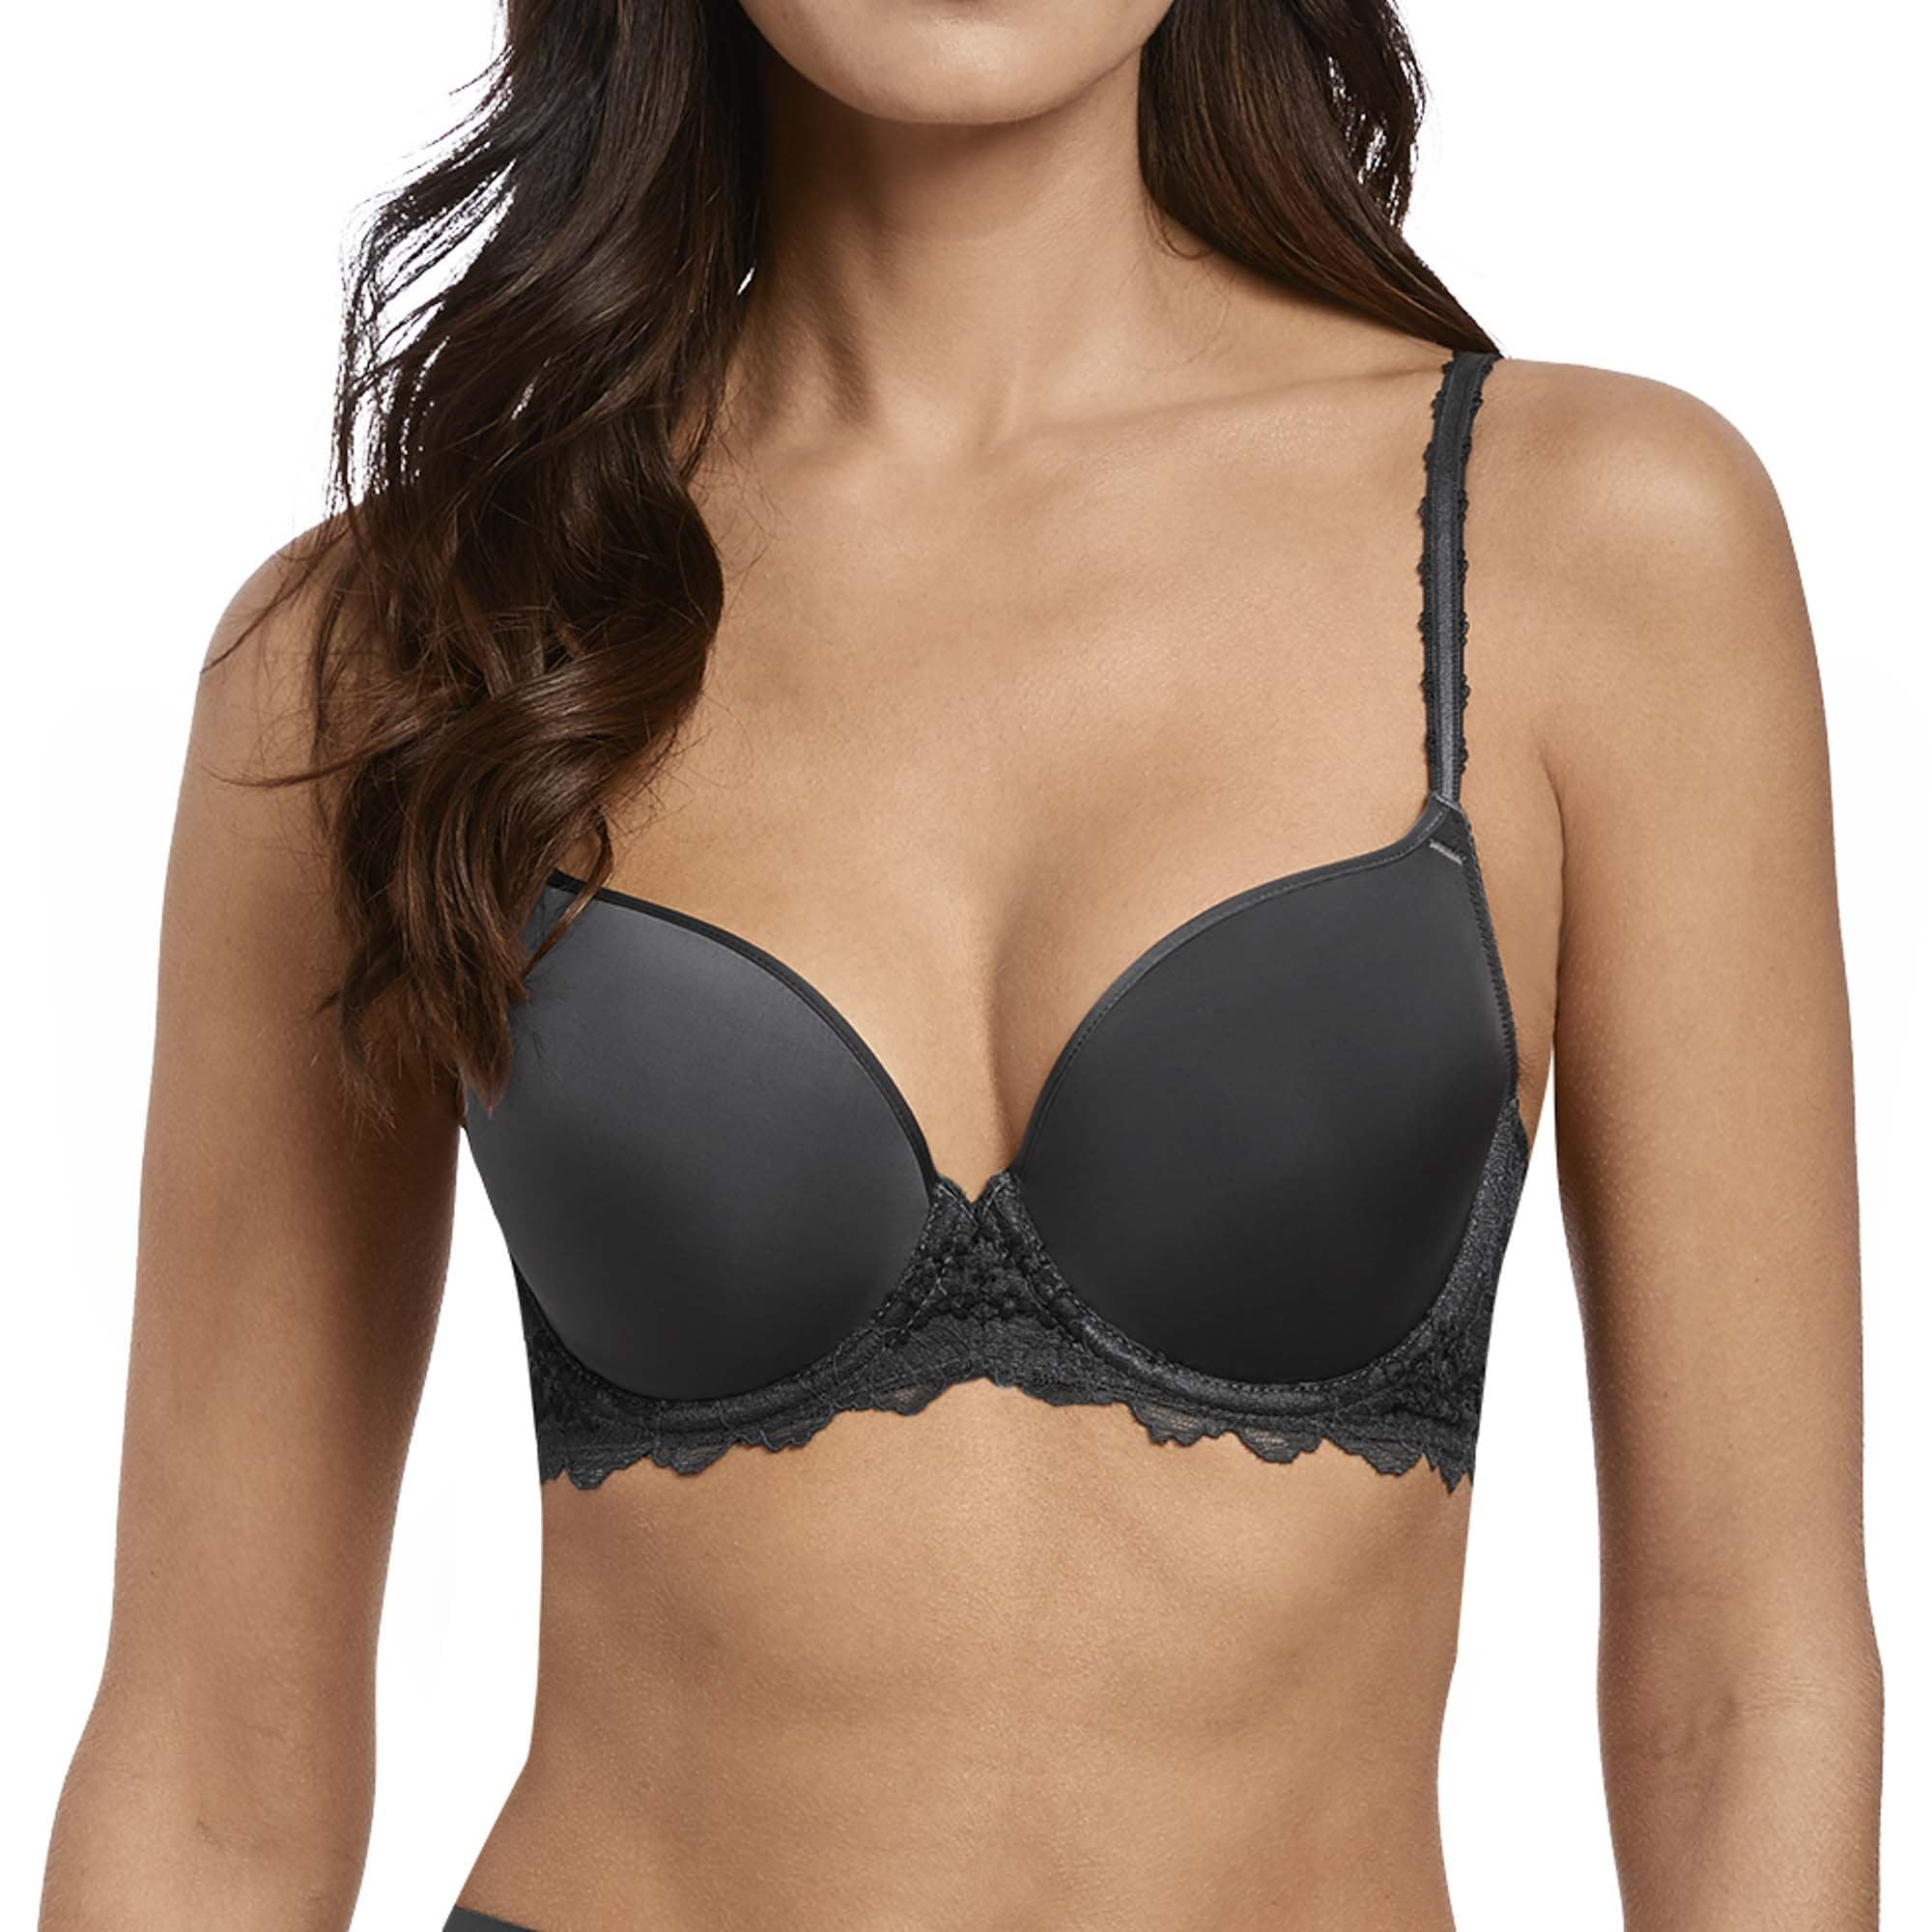 4392168c1c wacoal-lace-perfection-contour-bra-in-charcoal-p20882-130903 image ...